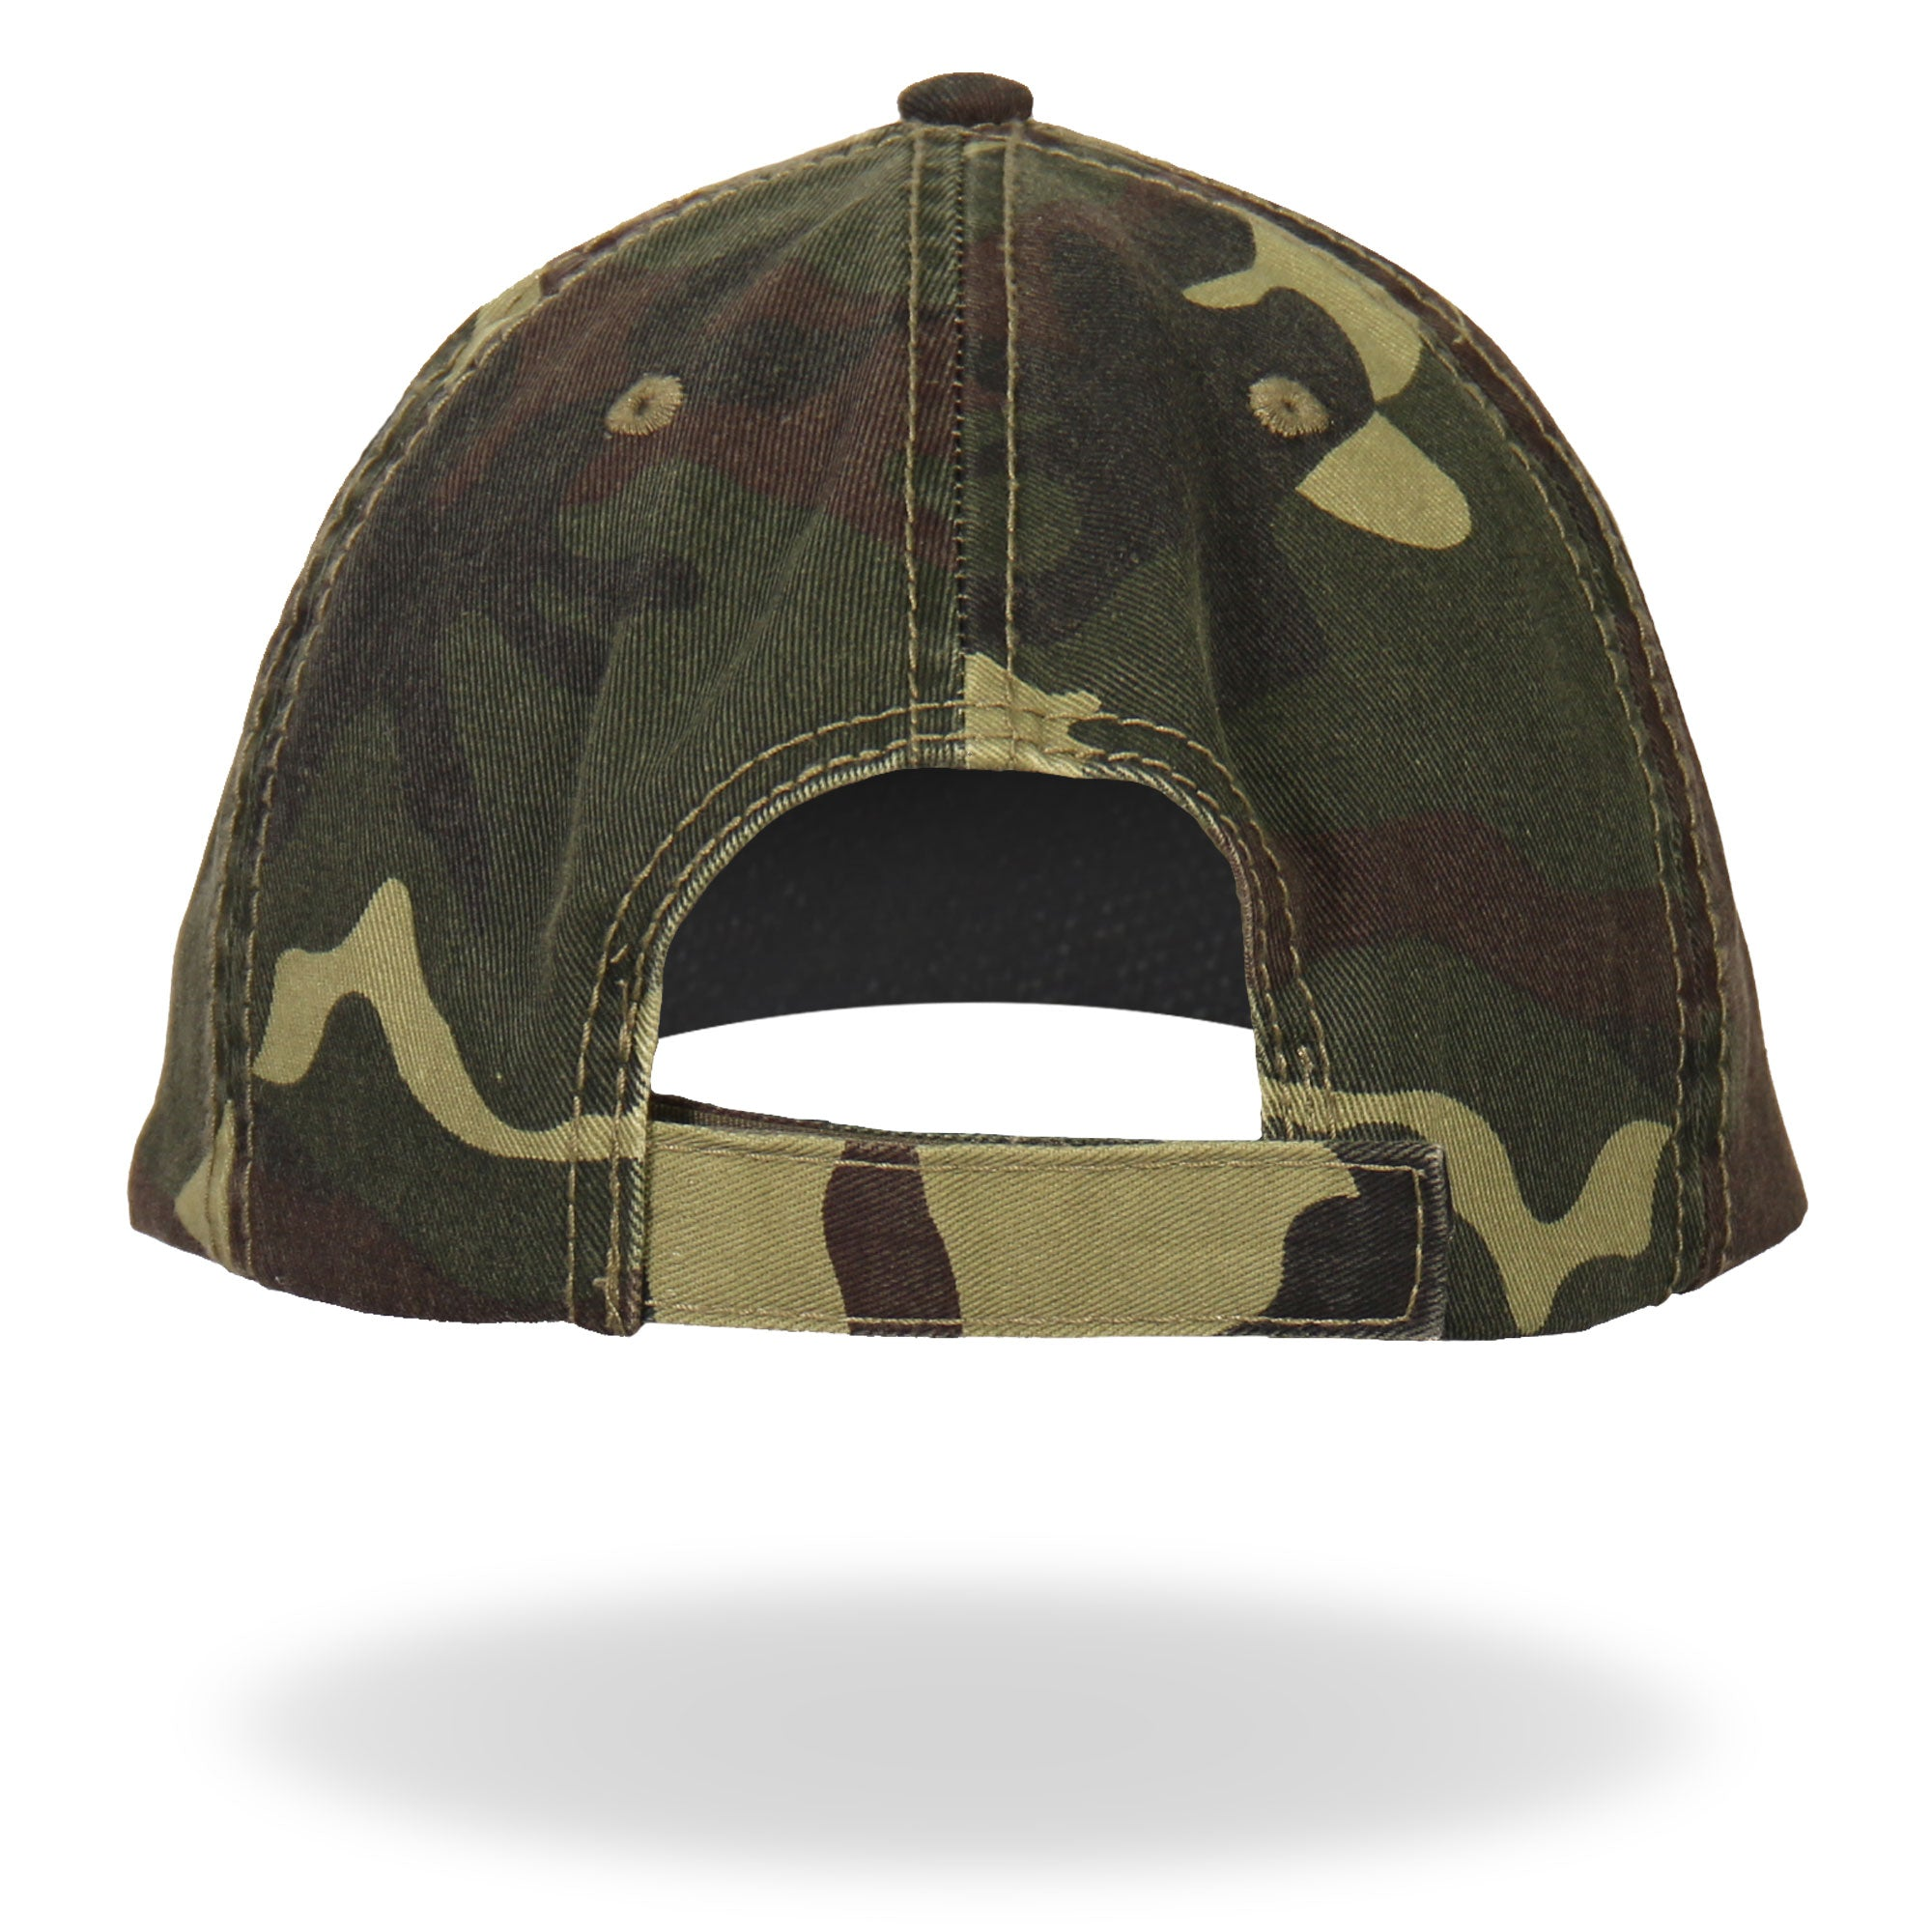 Hot Leathers 2nd Amendment Washed Camo Ball Cap